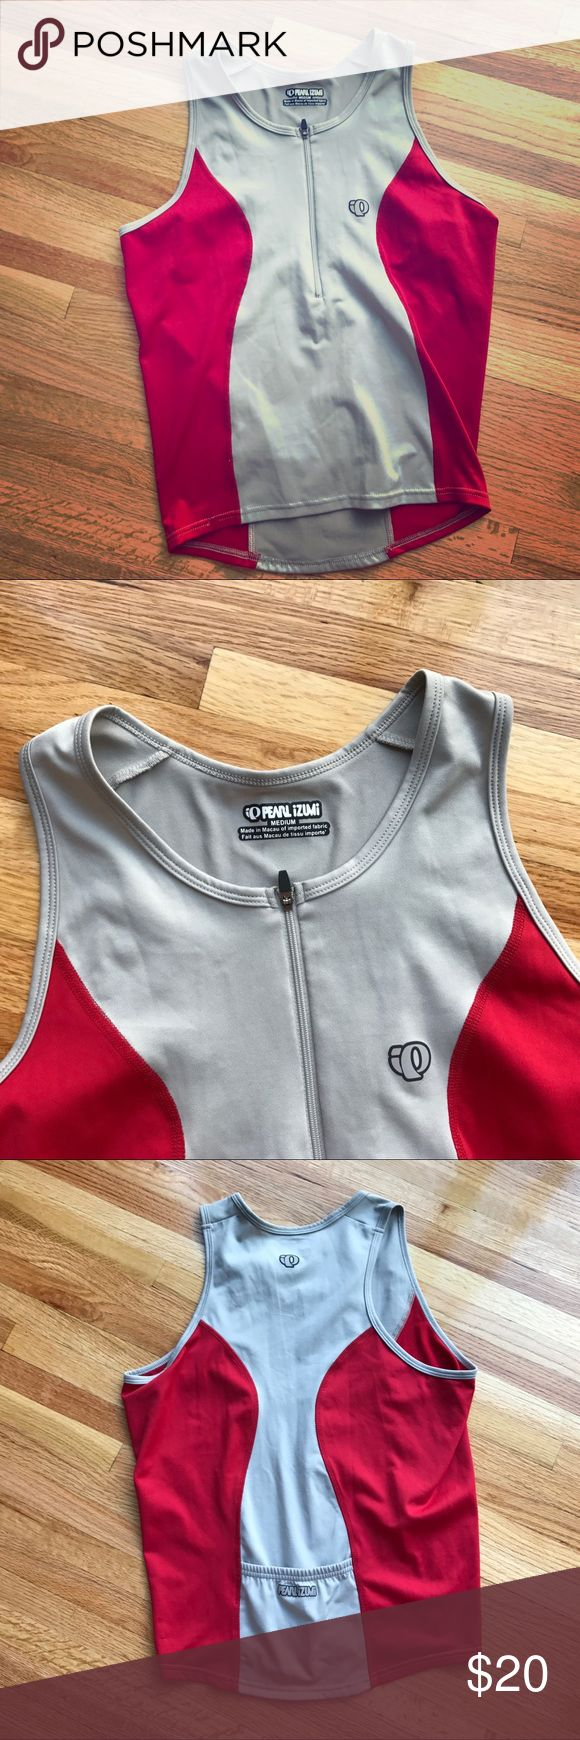 Pearl Izumi biking/running tank top Size medium. Great for biking/running/hiking. Zip up front for easy removal after sweating. Back pocket for goo or any other essentials you might need during your workout. Great condition! Pearl Izumi Tops